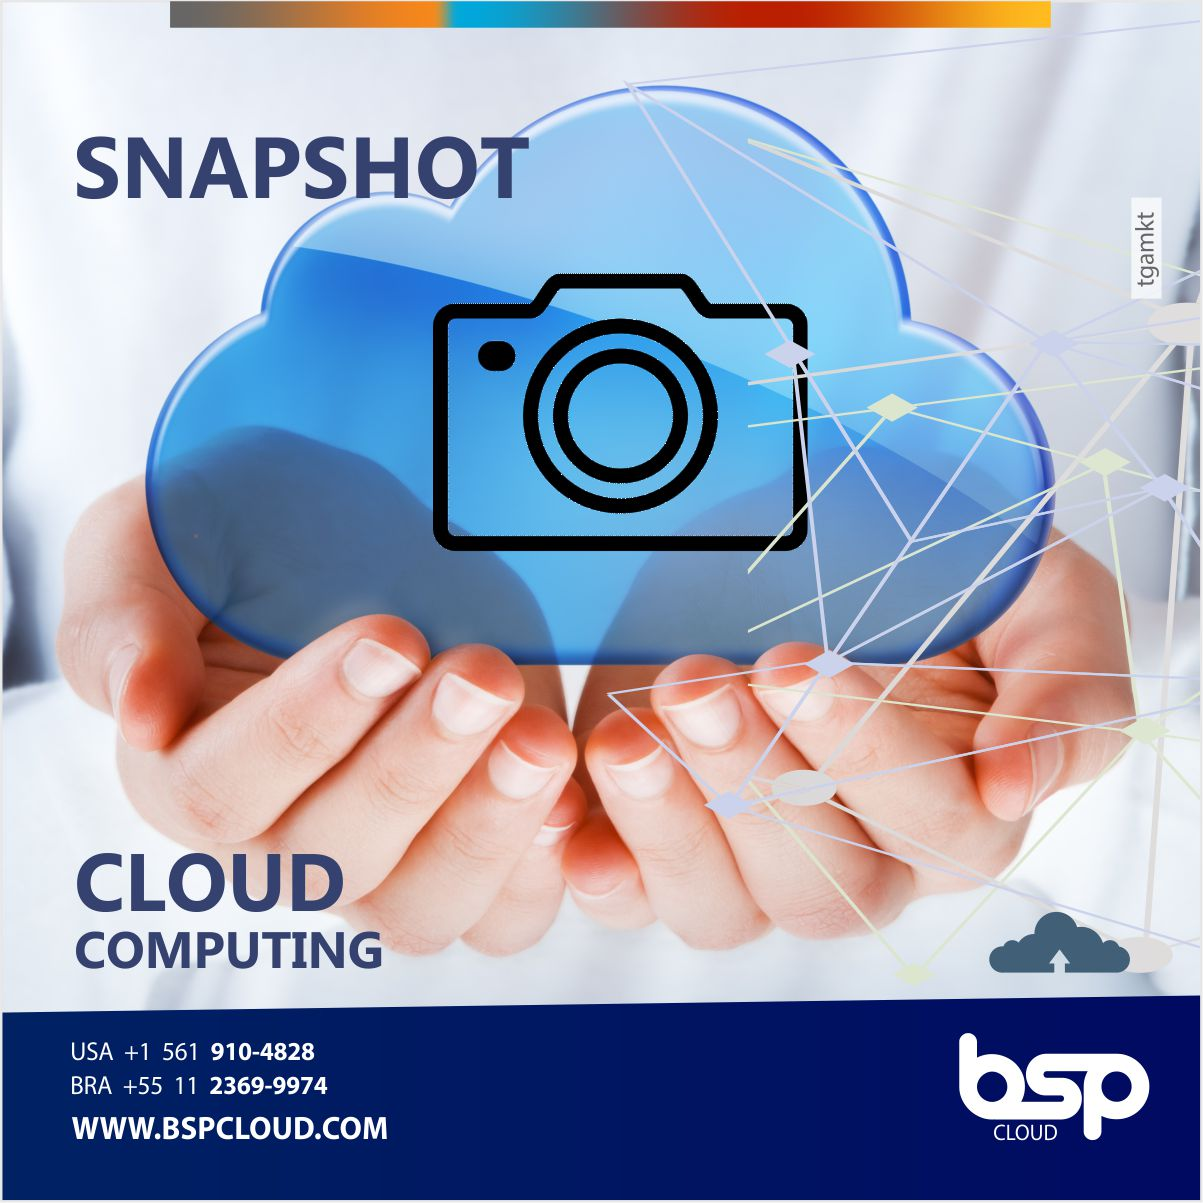 Bsp Cloud Snapshot